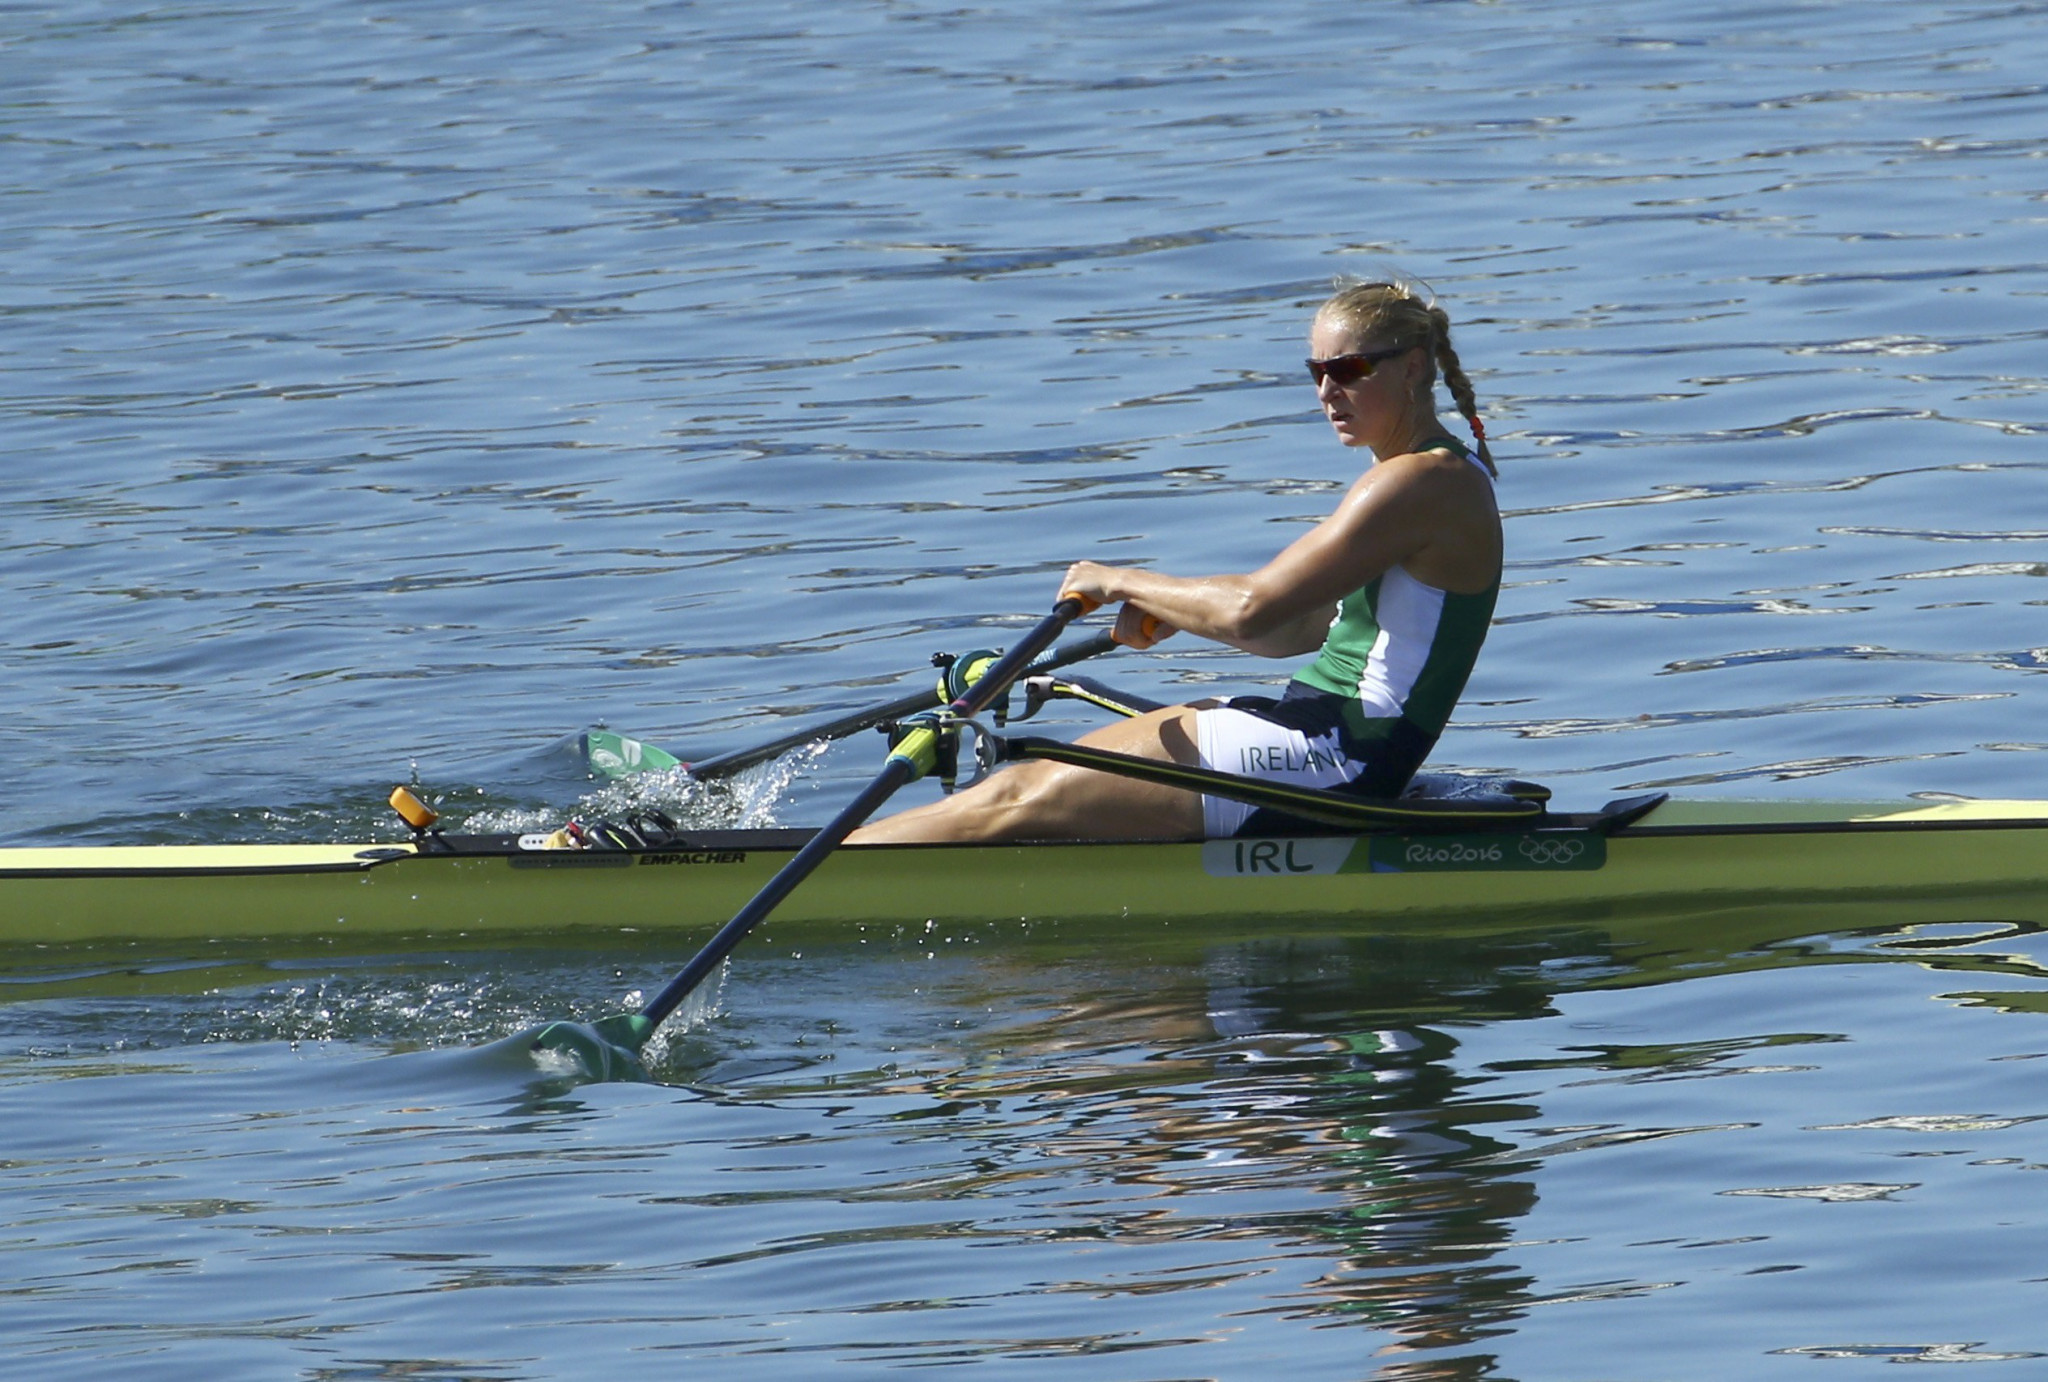 Reigning world and European champion Sanita Puspure of Ireland is one of the star female names in the field ©Getty Images